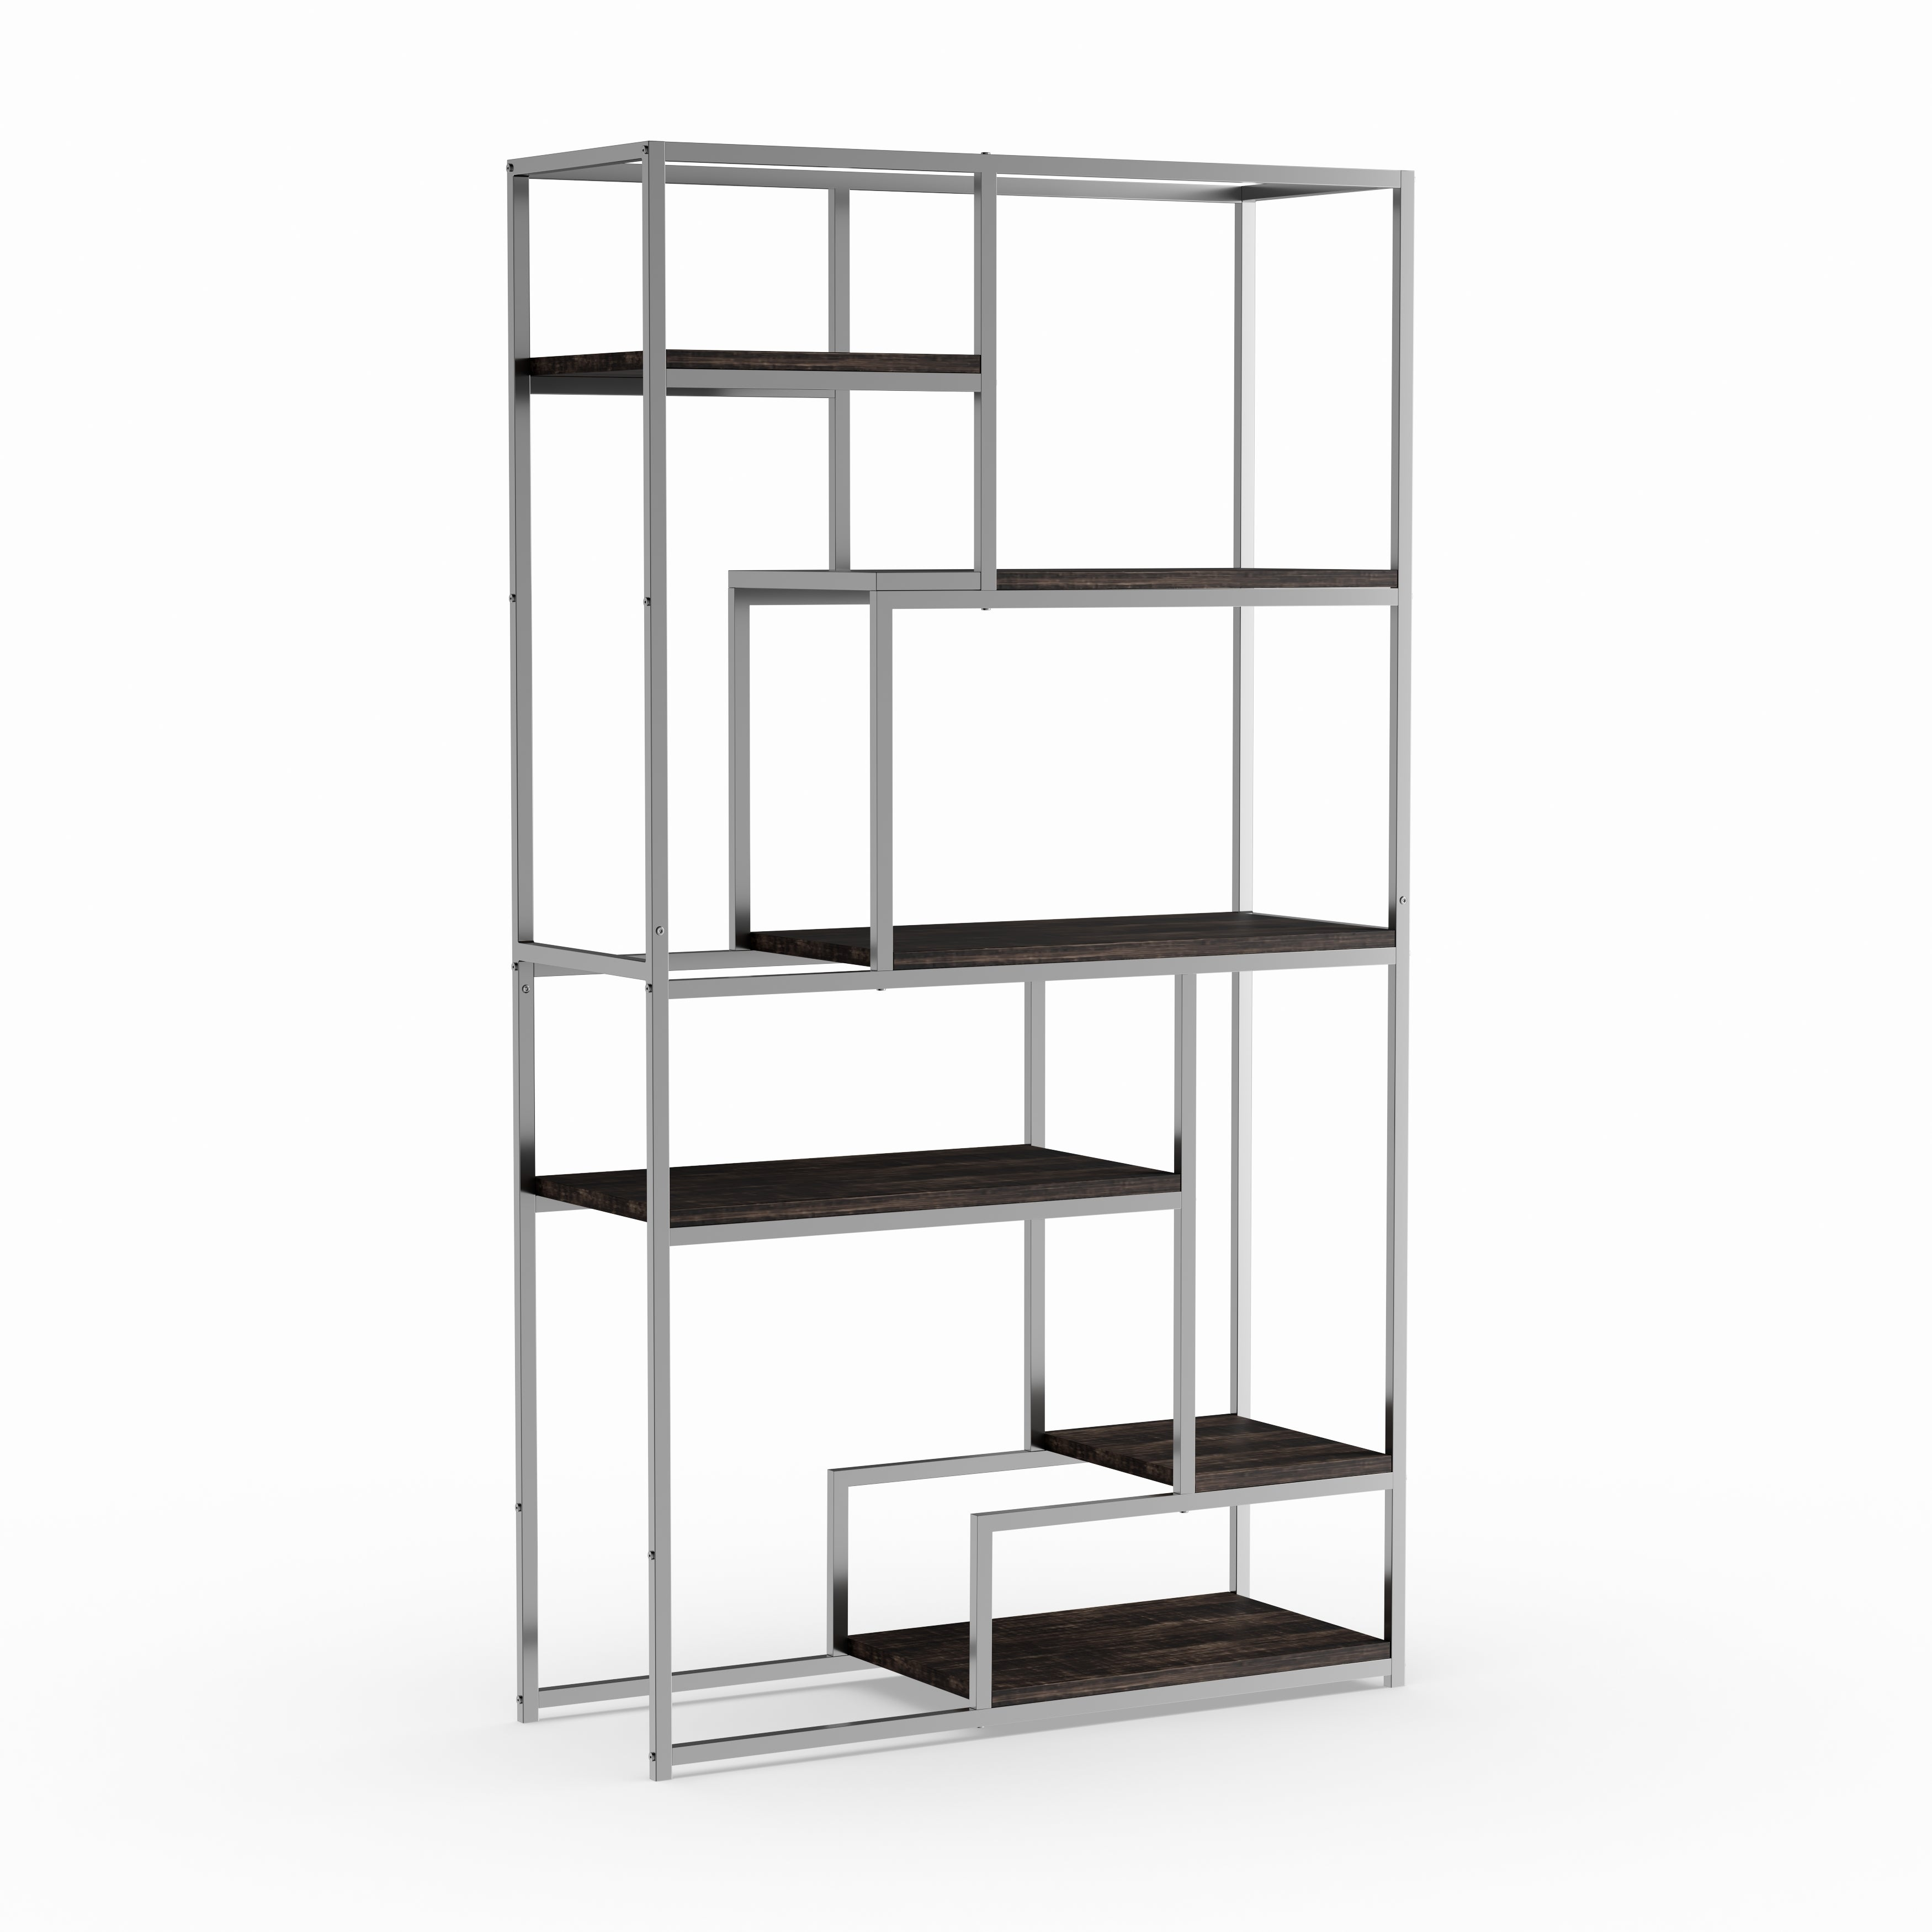 Shop furniture of america nara contemporary 6 shelf tiered open bookcase on sale free shipping today overstock com 10395481